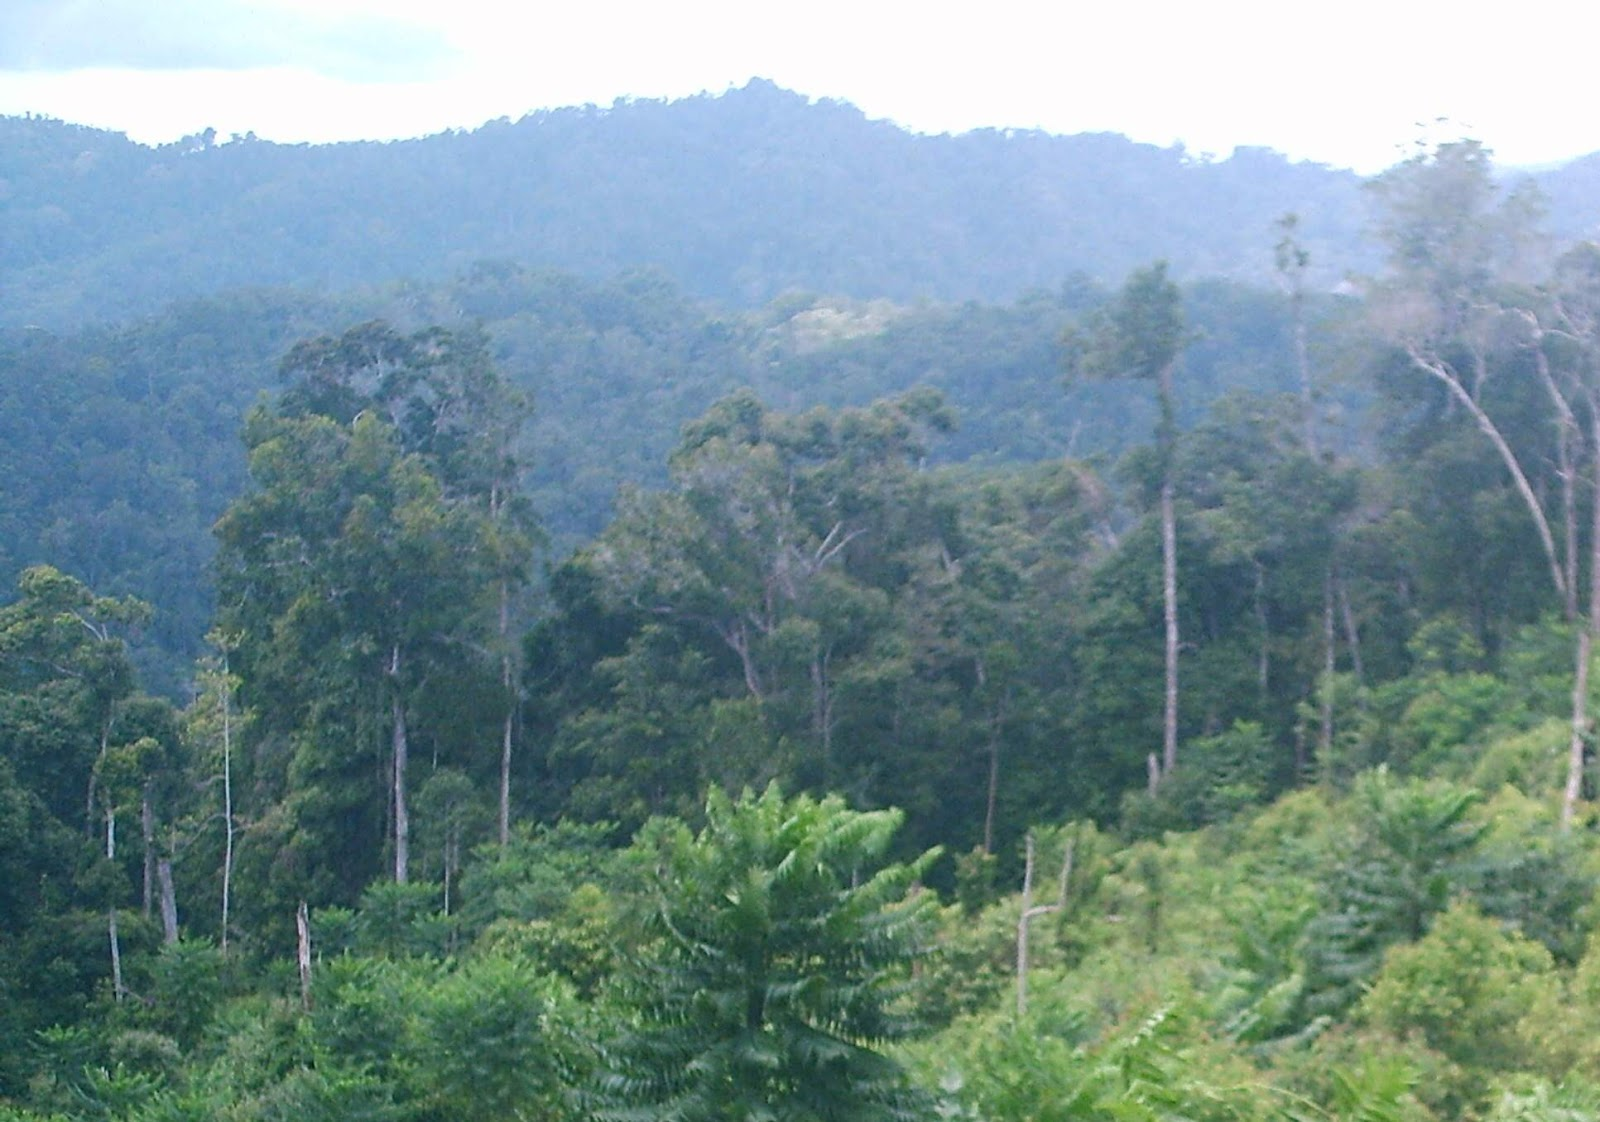 Characteristic of indonesian rainforests